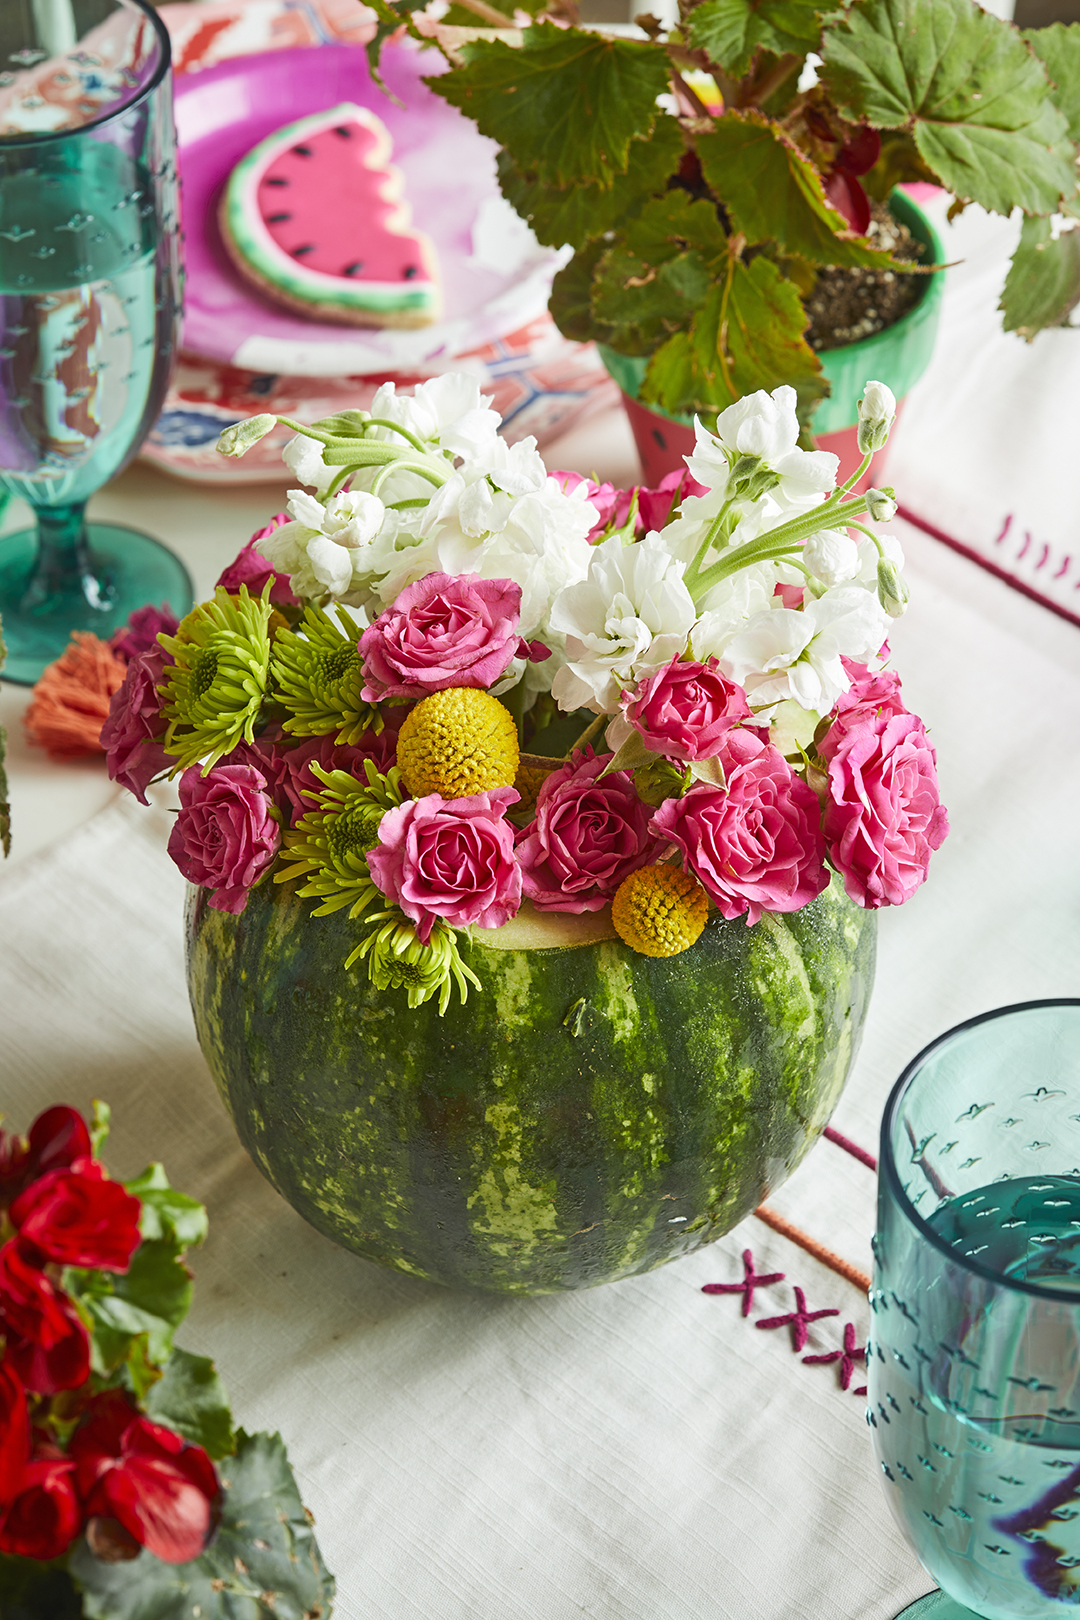 watermelon planter with flowers